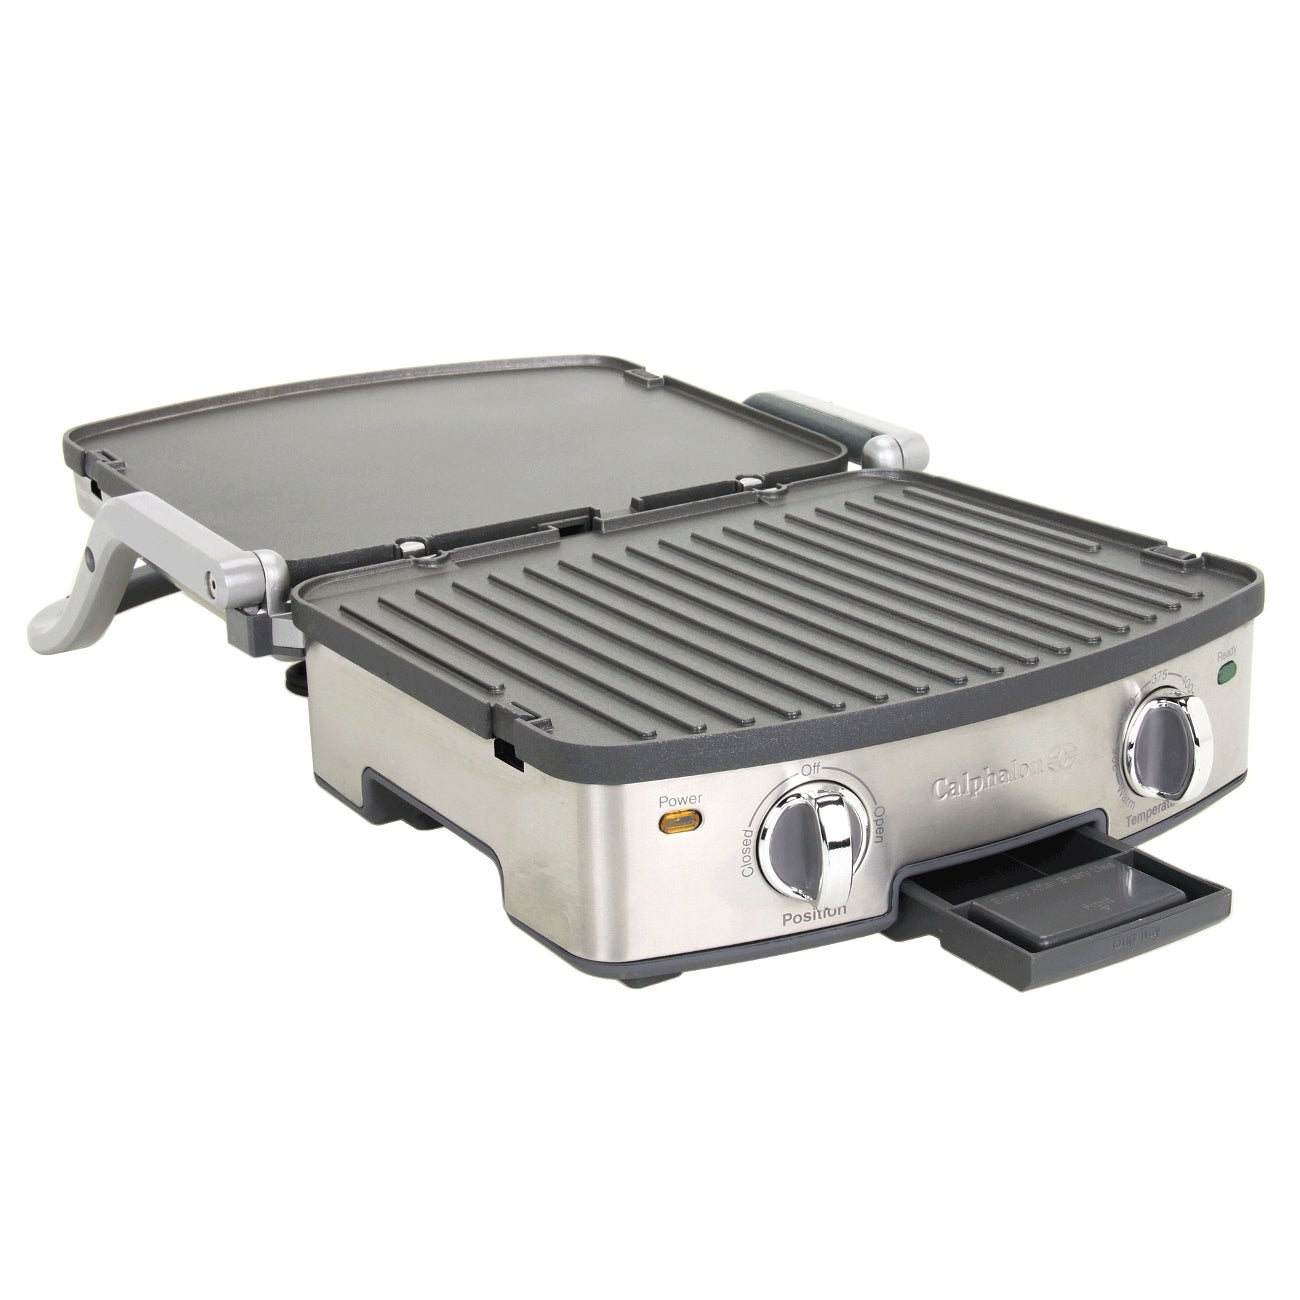 Calphalon 5 In 1 Stainless Steel Removable Plate Grill Free Shipping Today 9556456